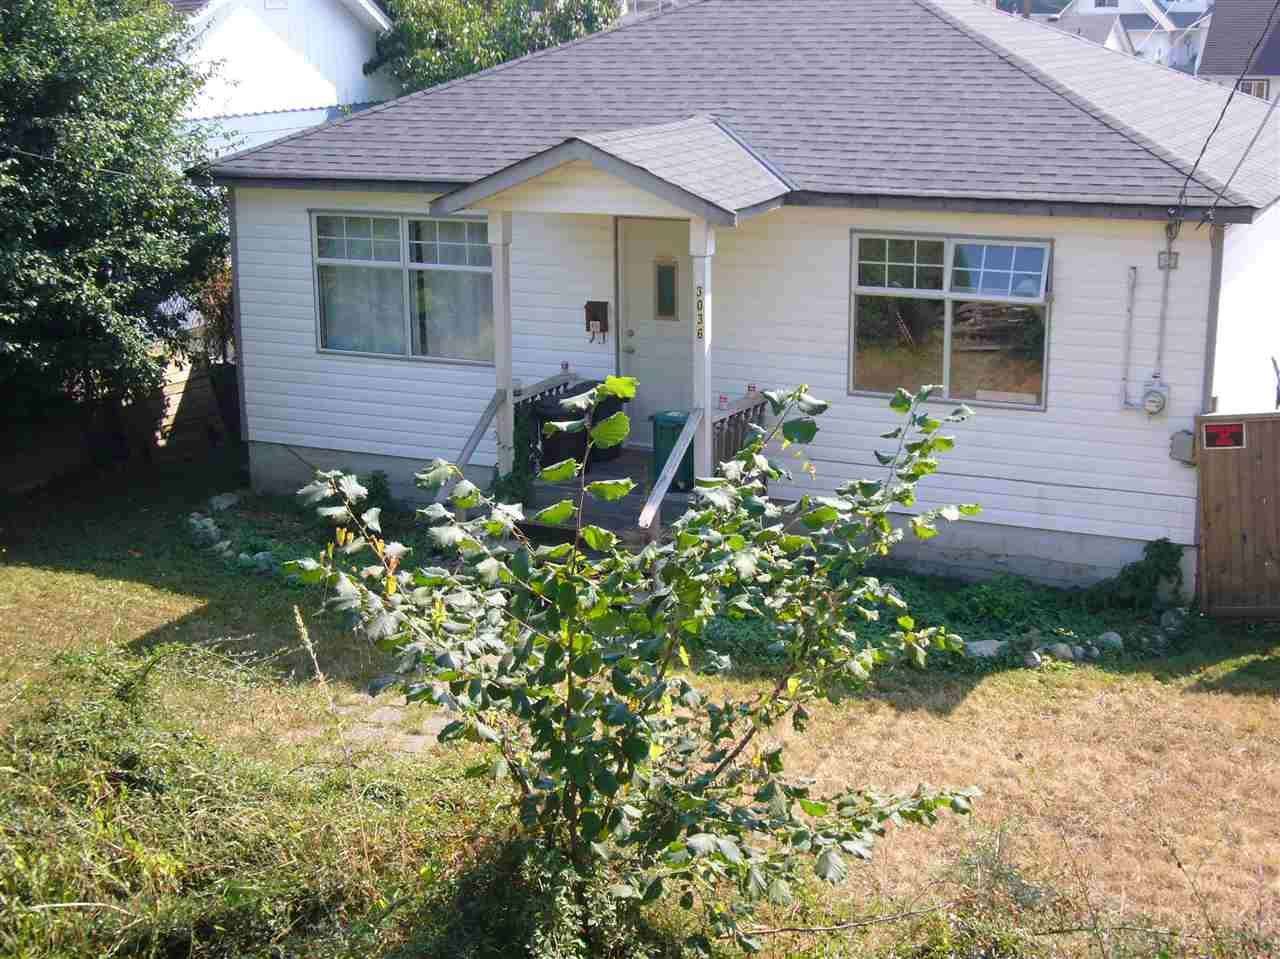 Main Photo: 33036 6TH Avenue in Mission: Mission BC House for sale : MLS®# R2201348